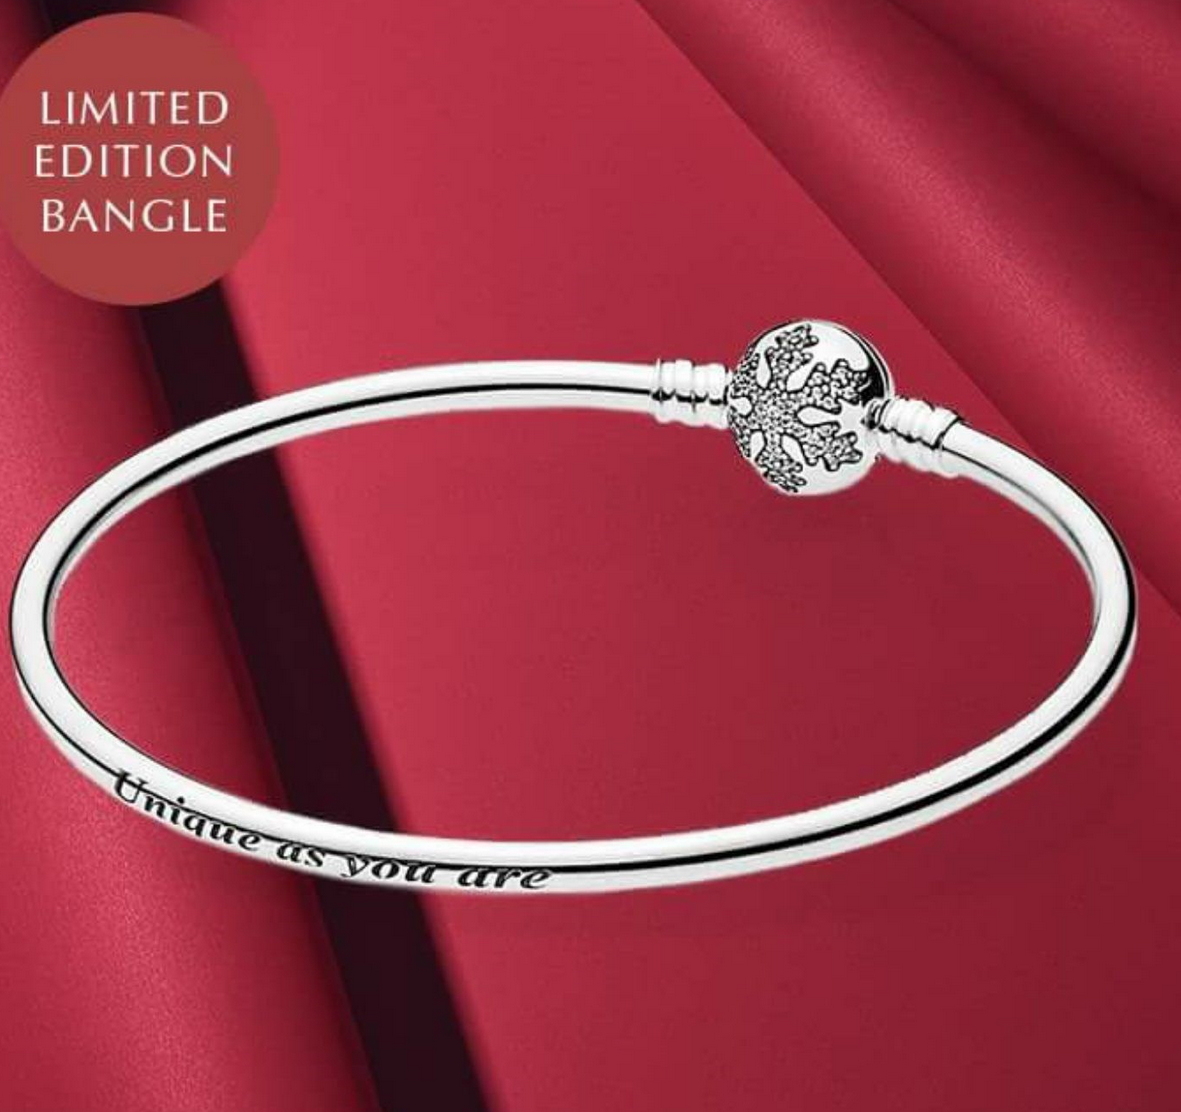 Pandora Bangle *Limited Edition